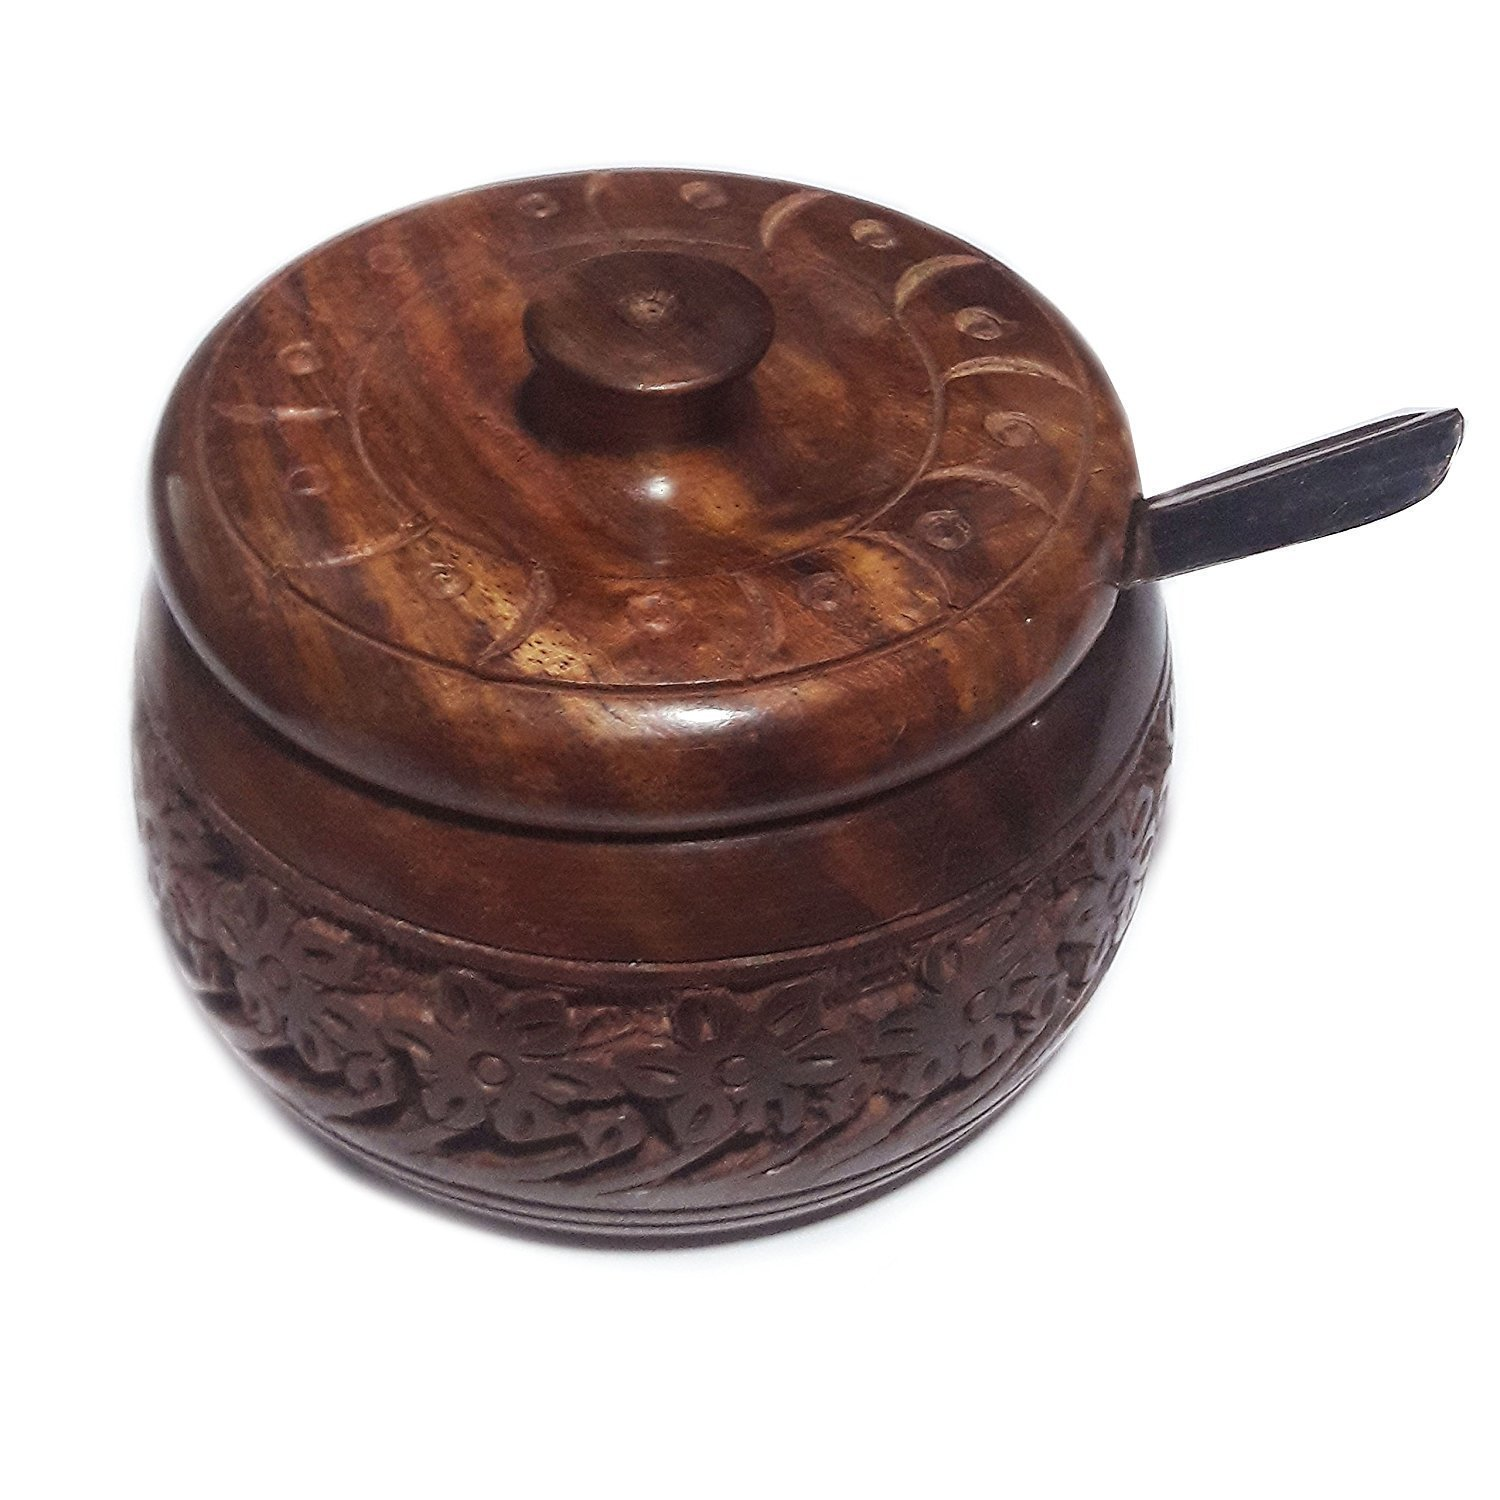 WhopperOnline Spice Storage Containers Wooden Jar Suger with Steel Bowl and Spoon Storage For Spices 4 Inch